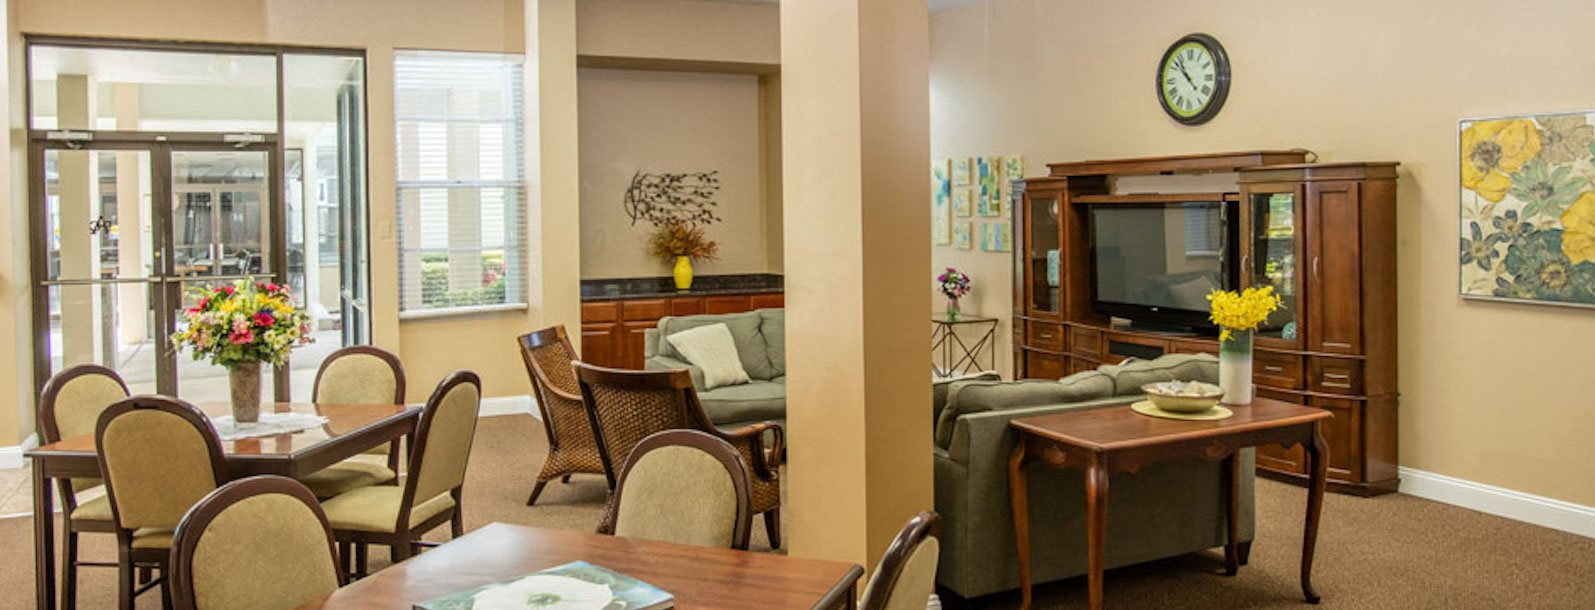 Episcopal Catholic Apartments in Winter Park, FL clubhouse interior